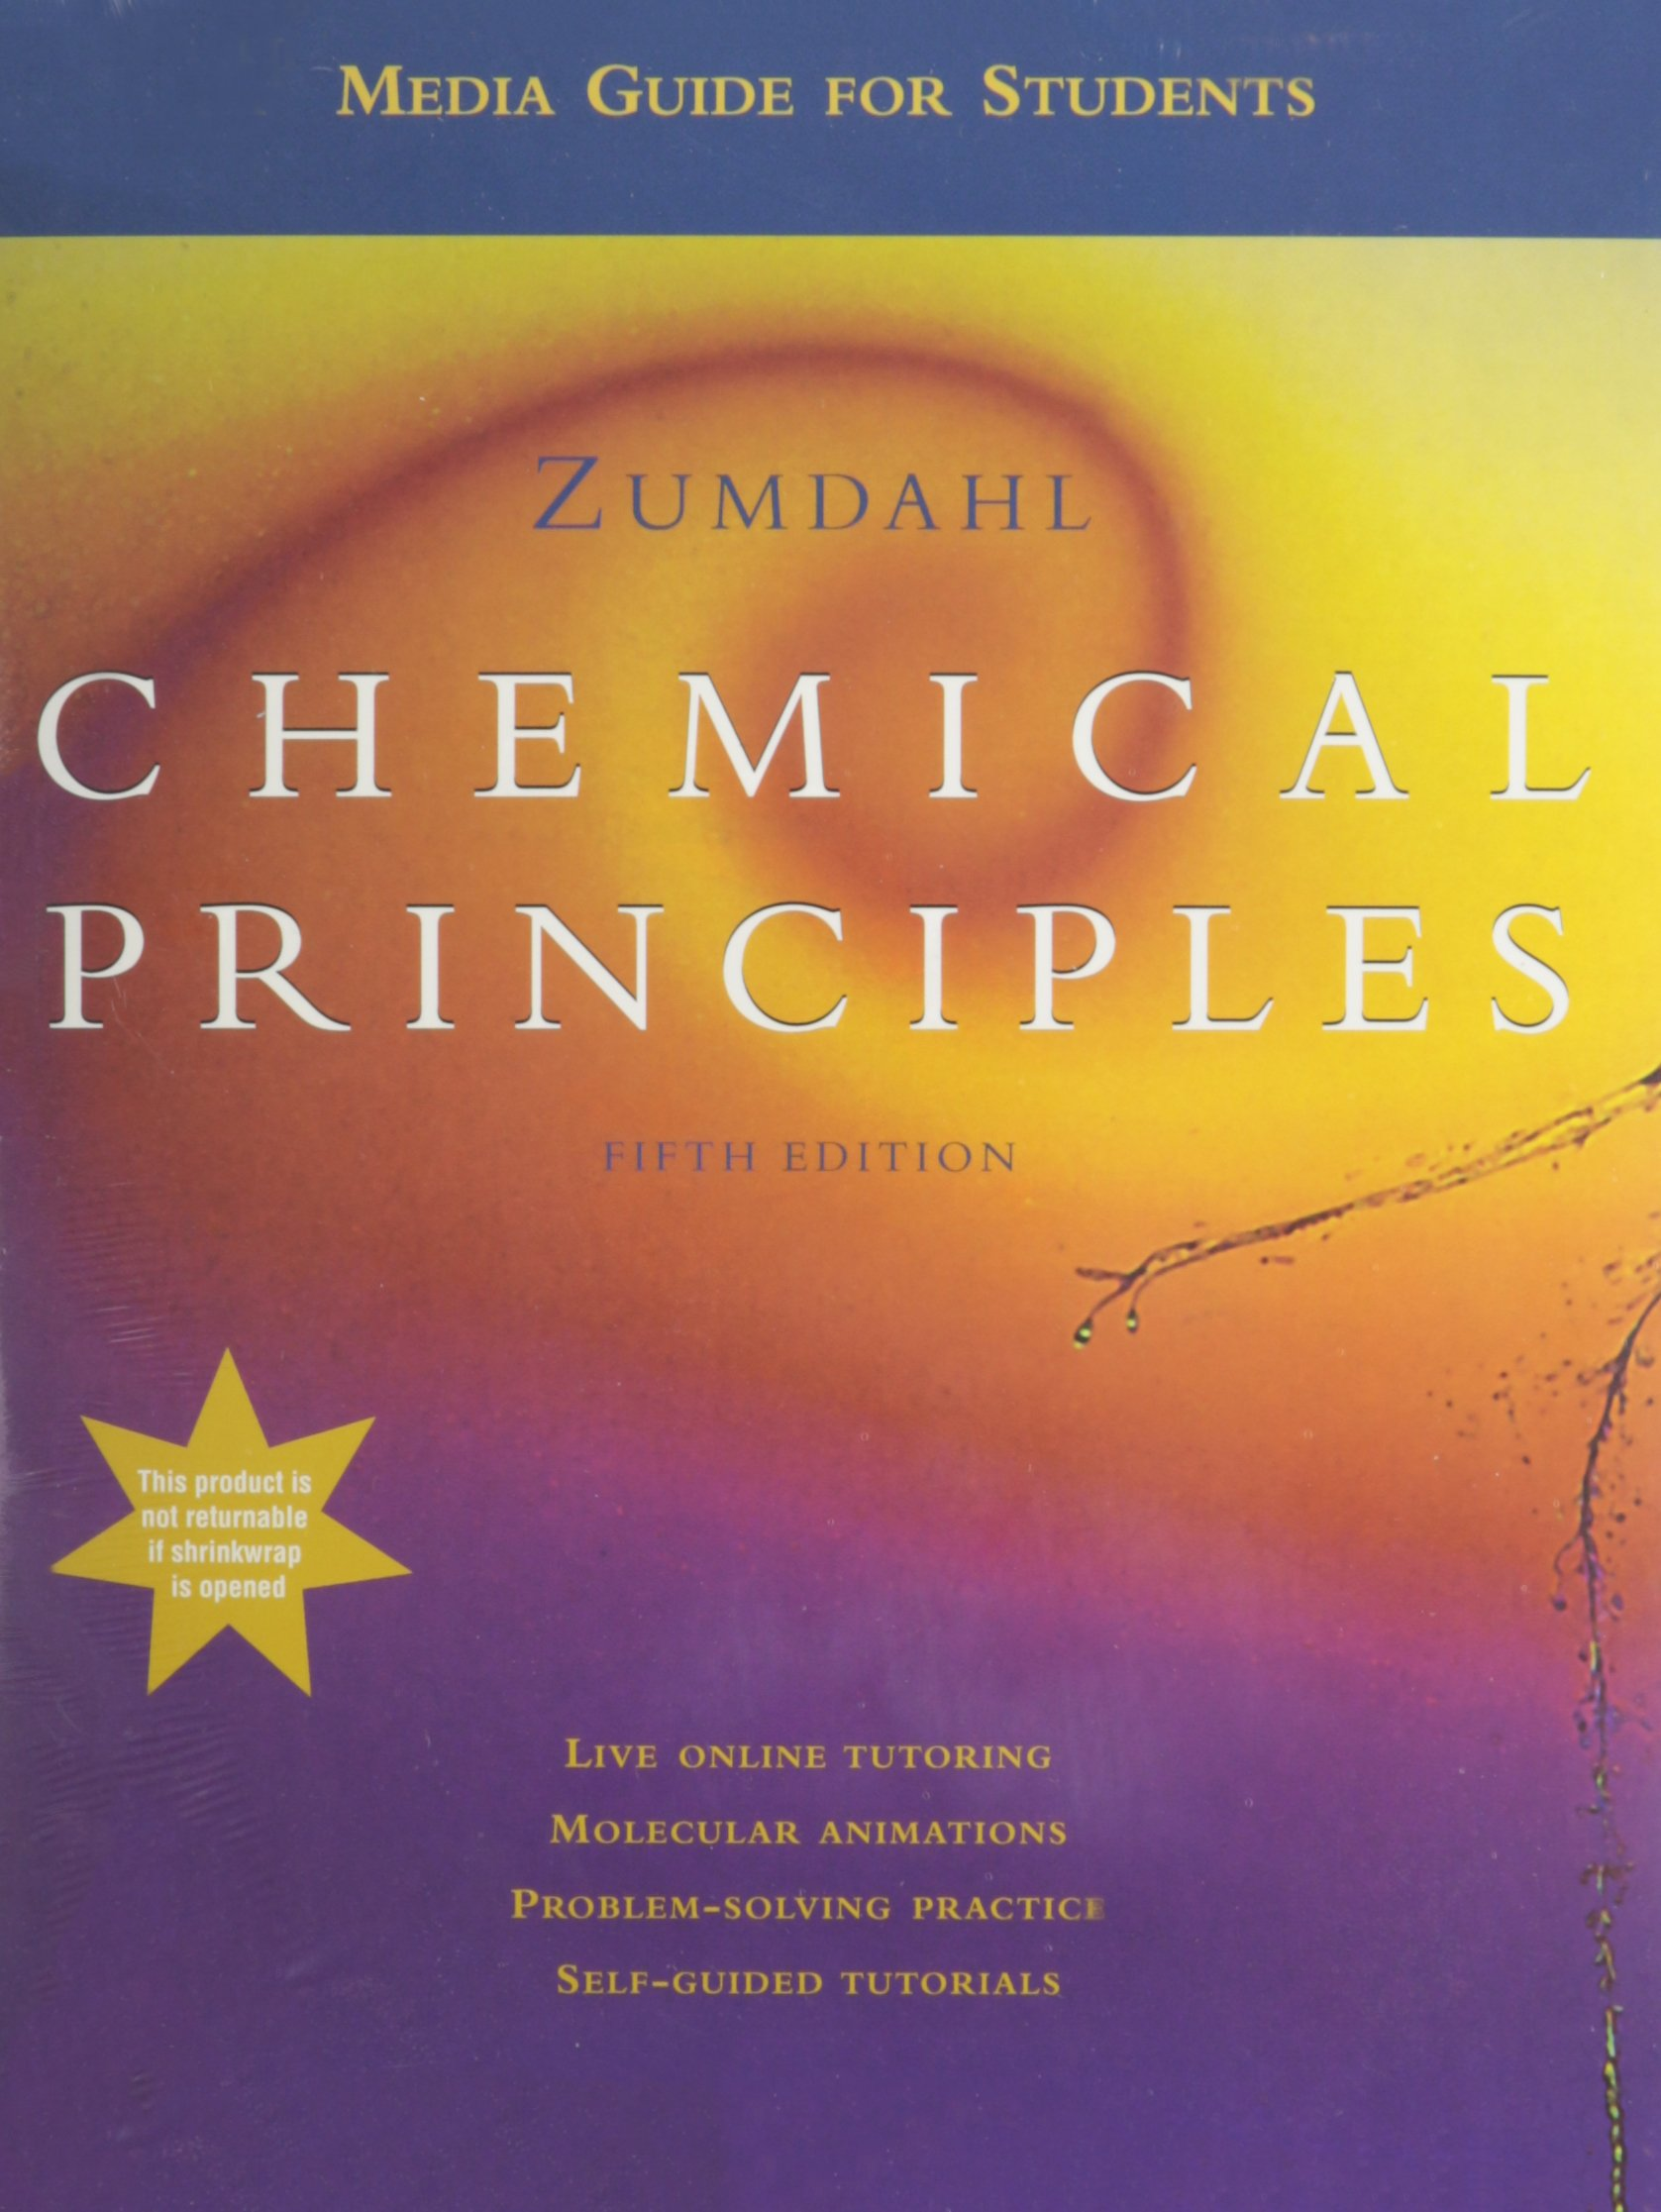 Chemical Principles With Media Guide + Cd-rom + Study Guide 5th Ed: Steven  S. Zumdahl: 9780618495337: Amazon.com: Books